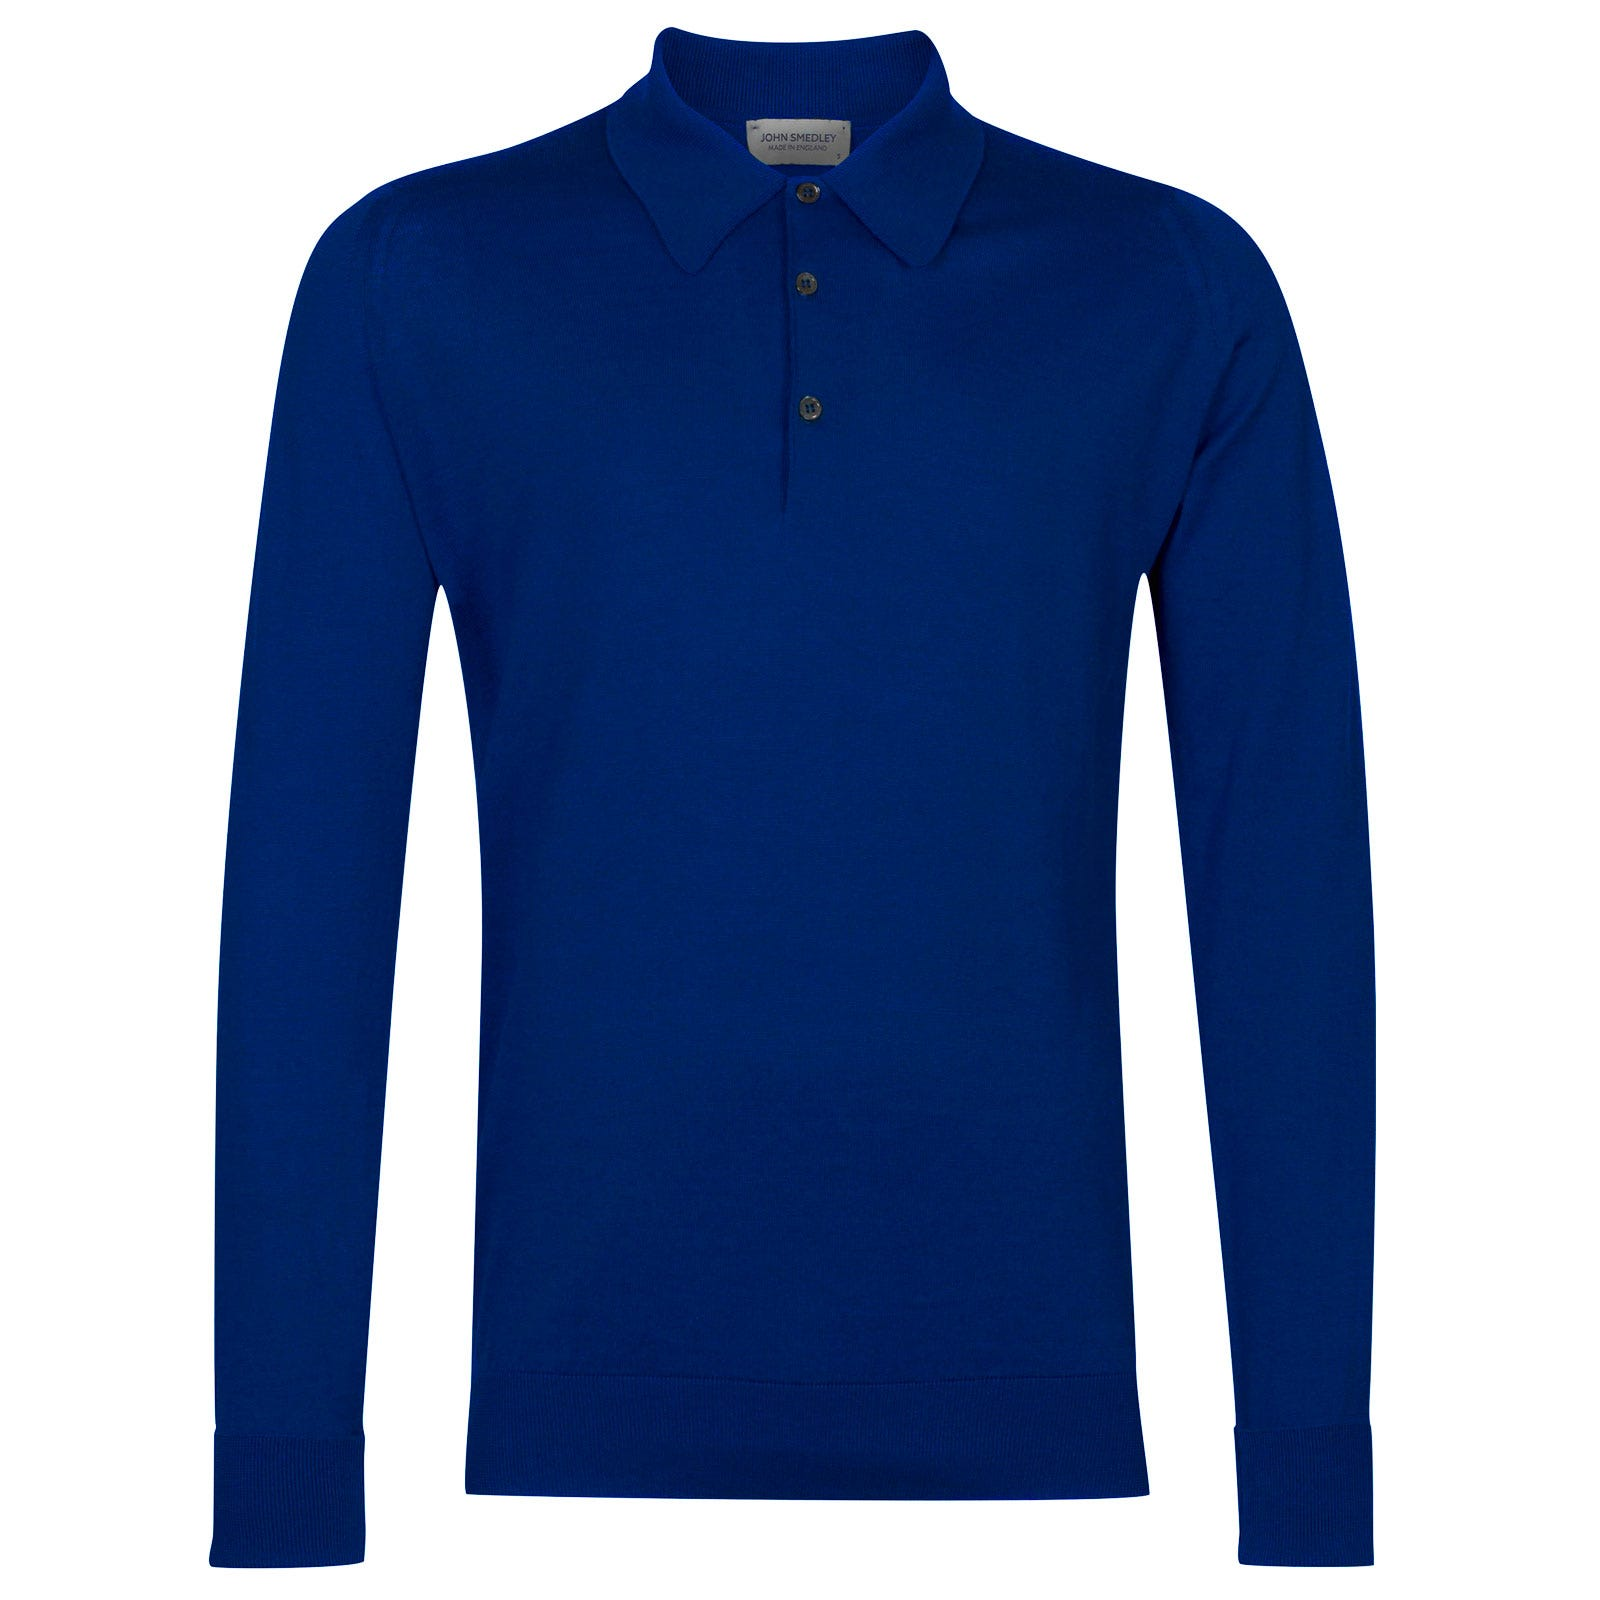 John Smedley finchley Sea Island Cotton Shirt in Coniston Blue-S